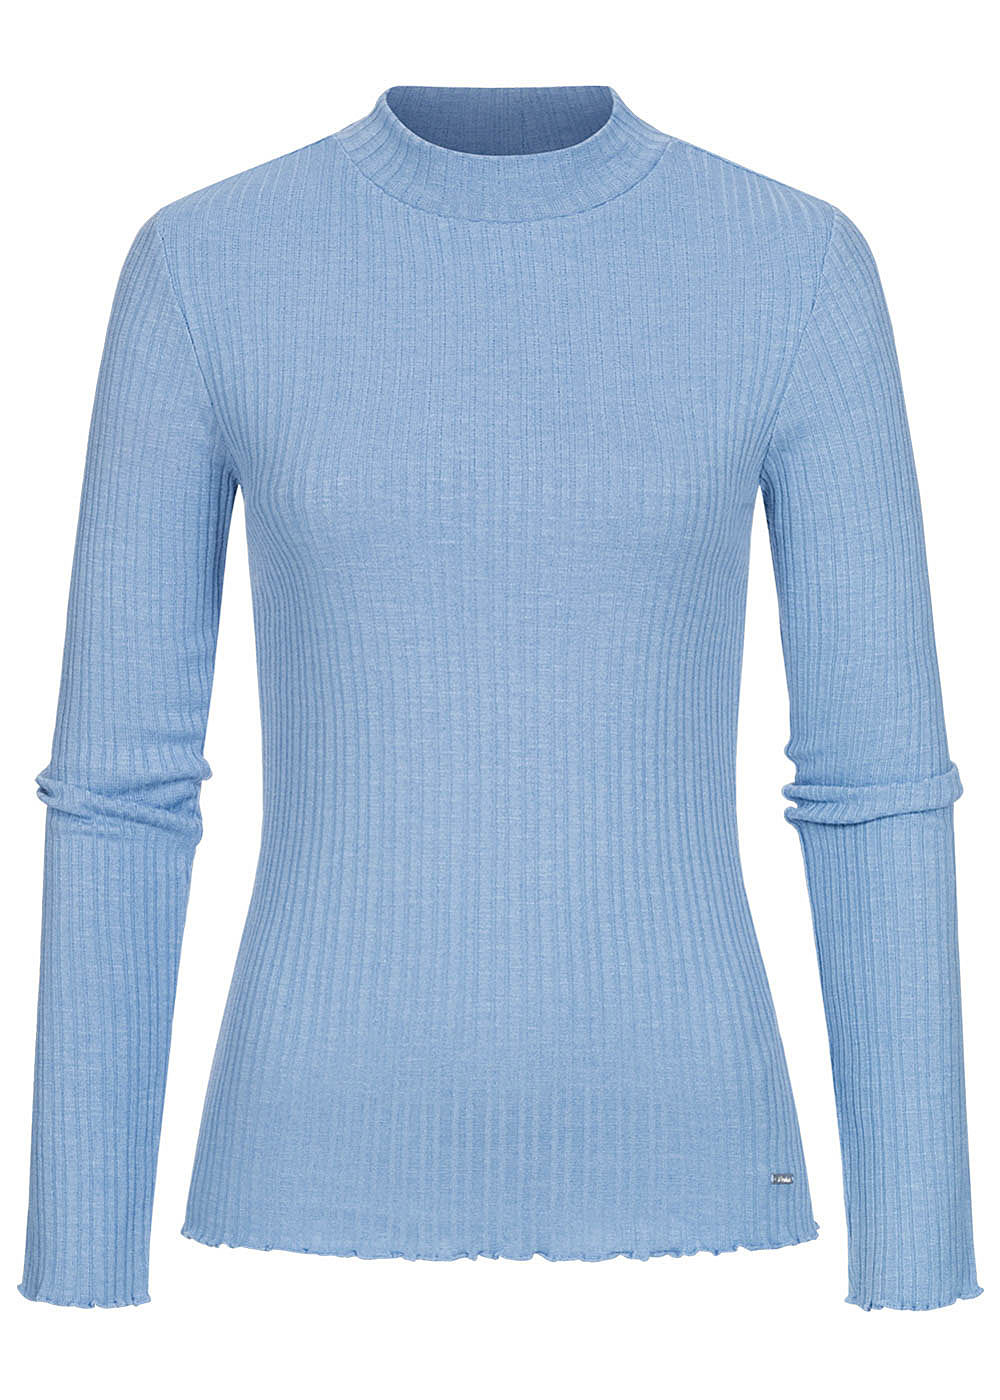 Tom Tailor Damen Ribbed Frill Longsleeve Pullover summer blau - Art.-Nr.: 20104624